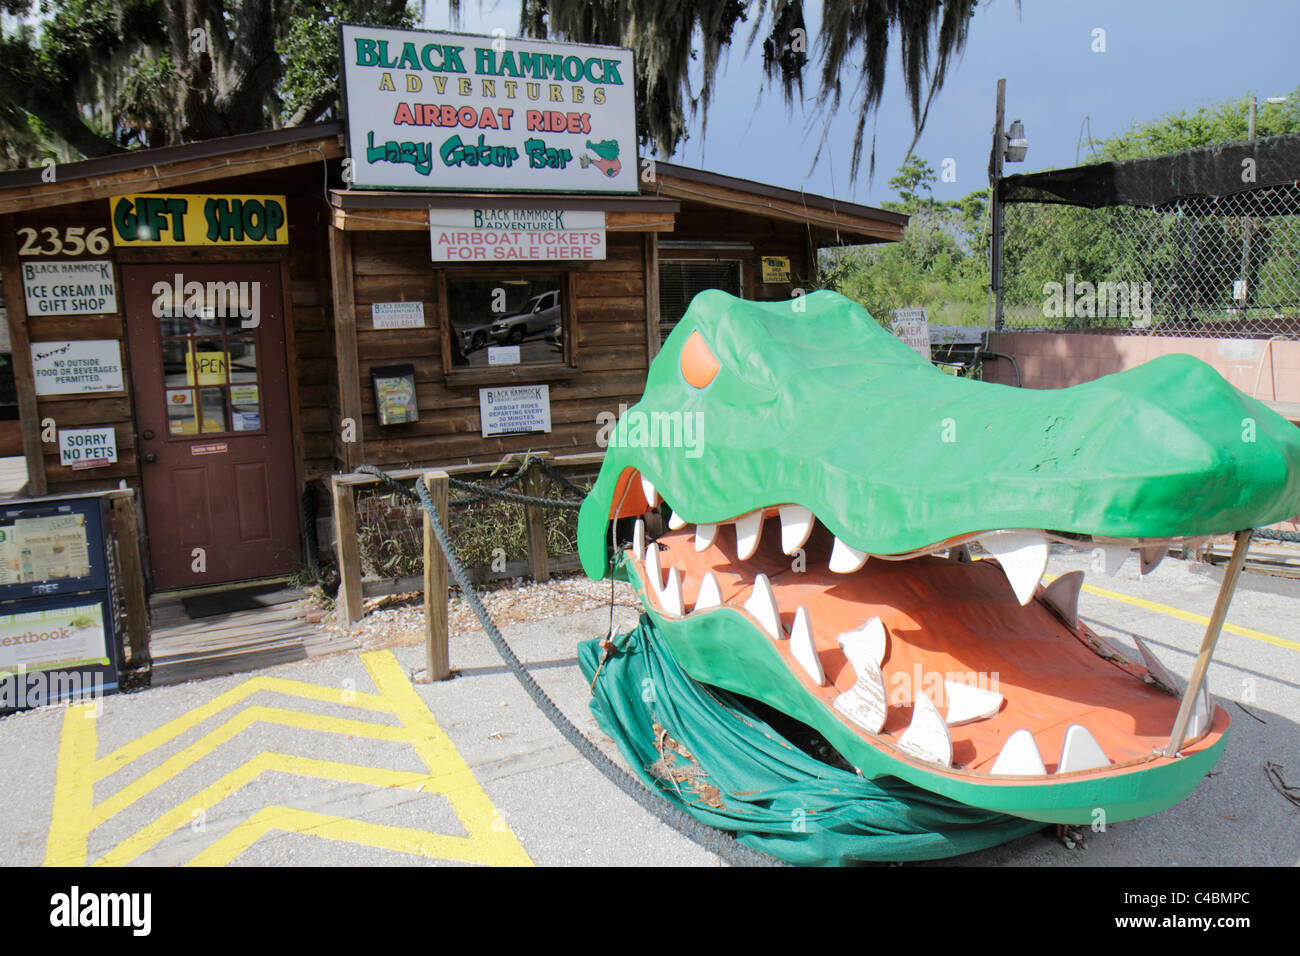 Medium image of orlando florida oviedo lake jesup black hammock adventures gift shop giant alligator head sculpture